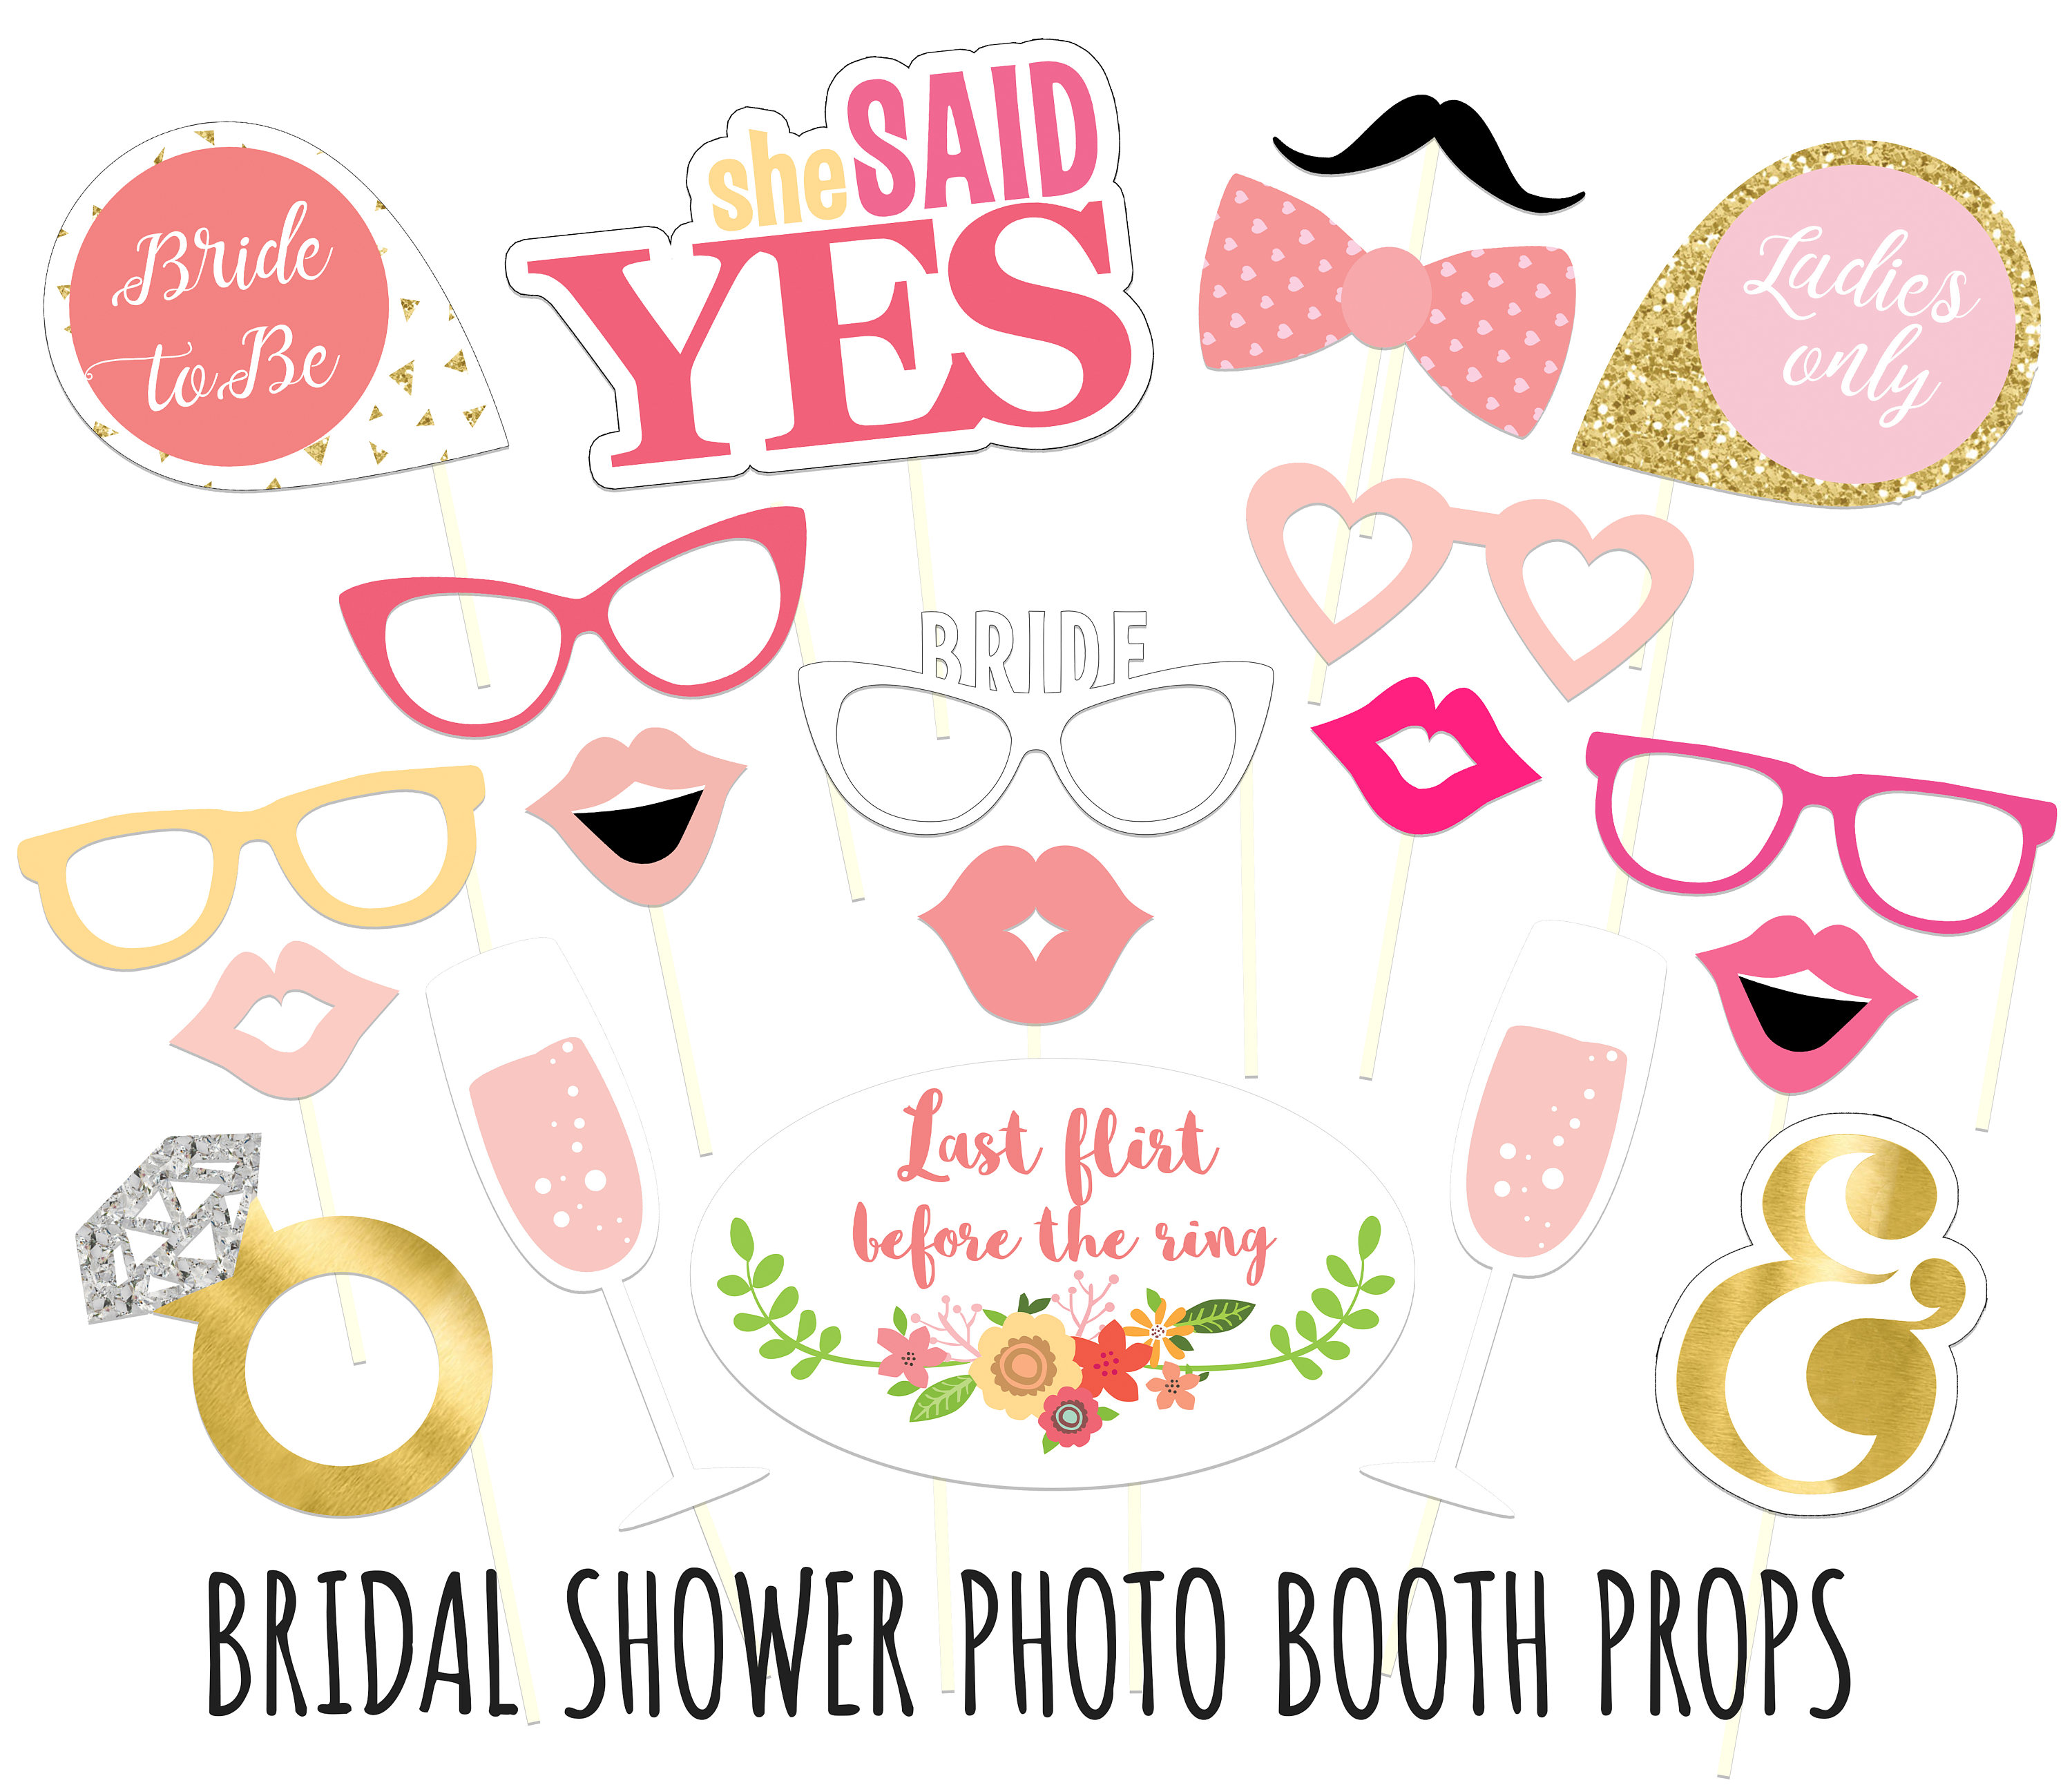 Superb image with free printable bridal shower photo booth props